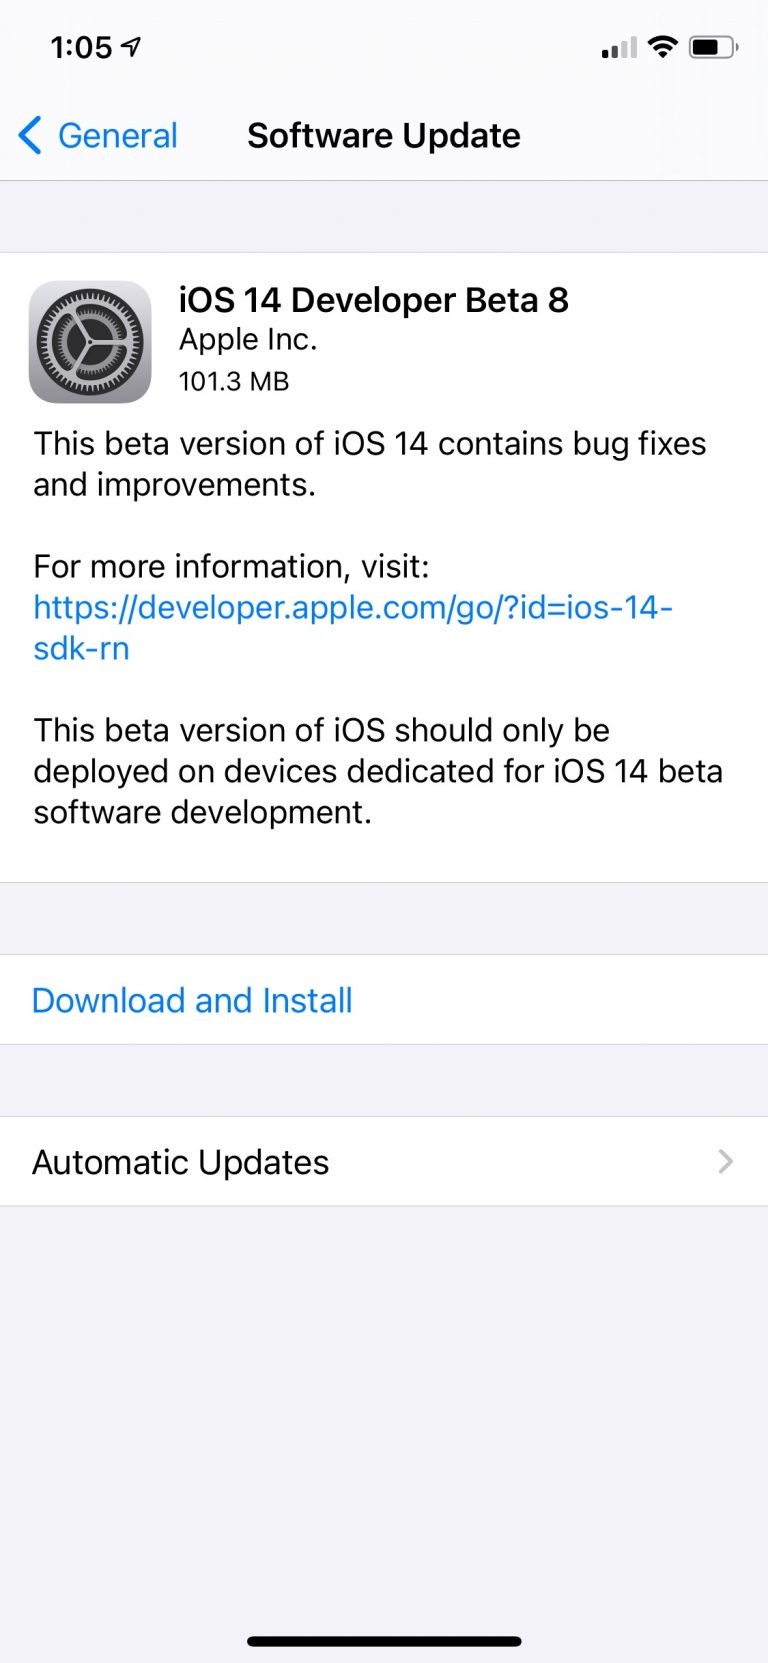 Apple Releases iOS 14 Beta 8 and iPadOS 14 Beta 8 [Download]